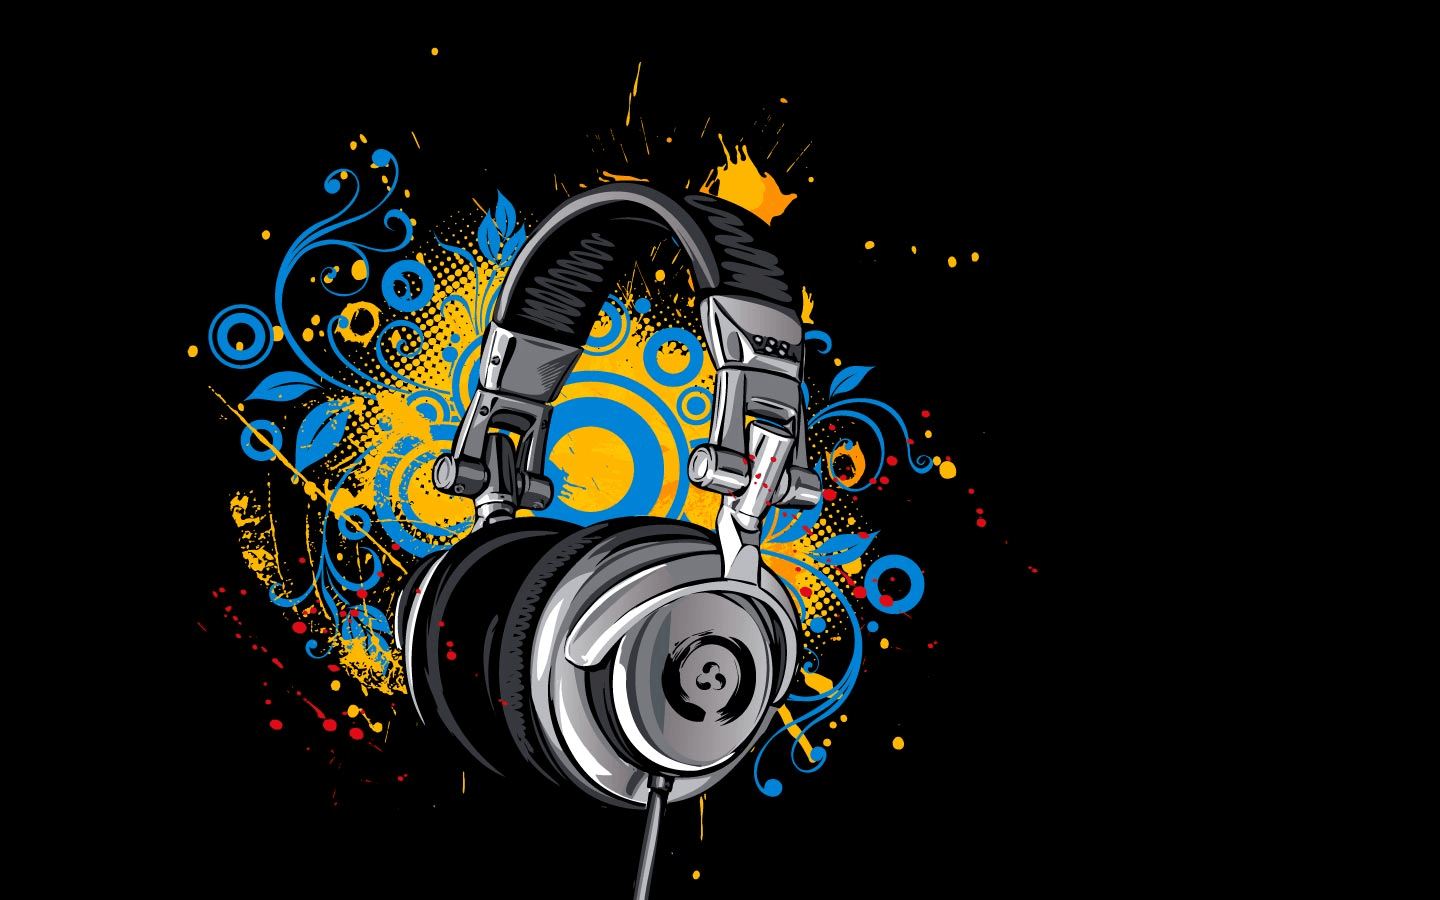 1440x900 Headphone Wallpaper Image Group (41+)